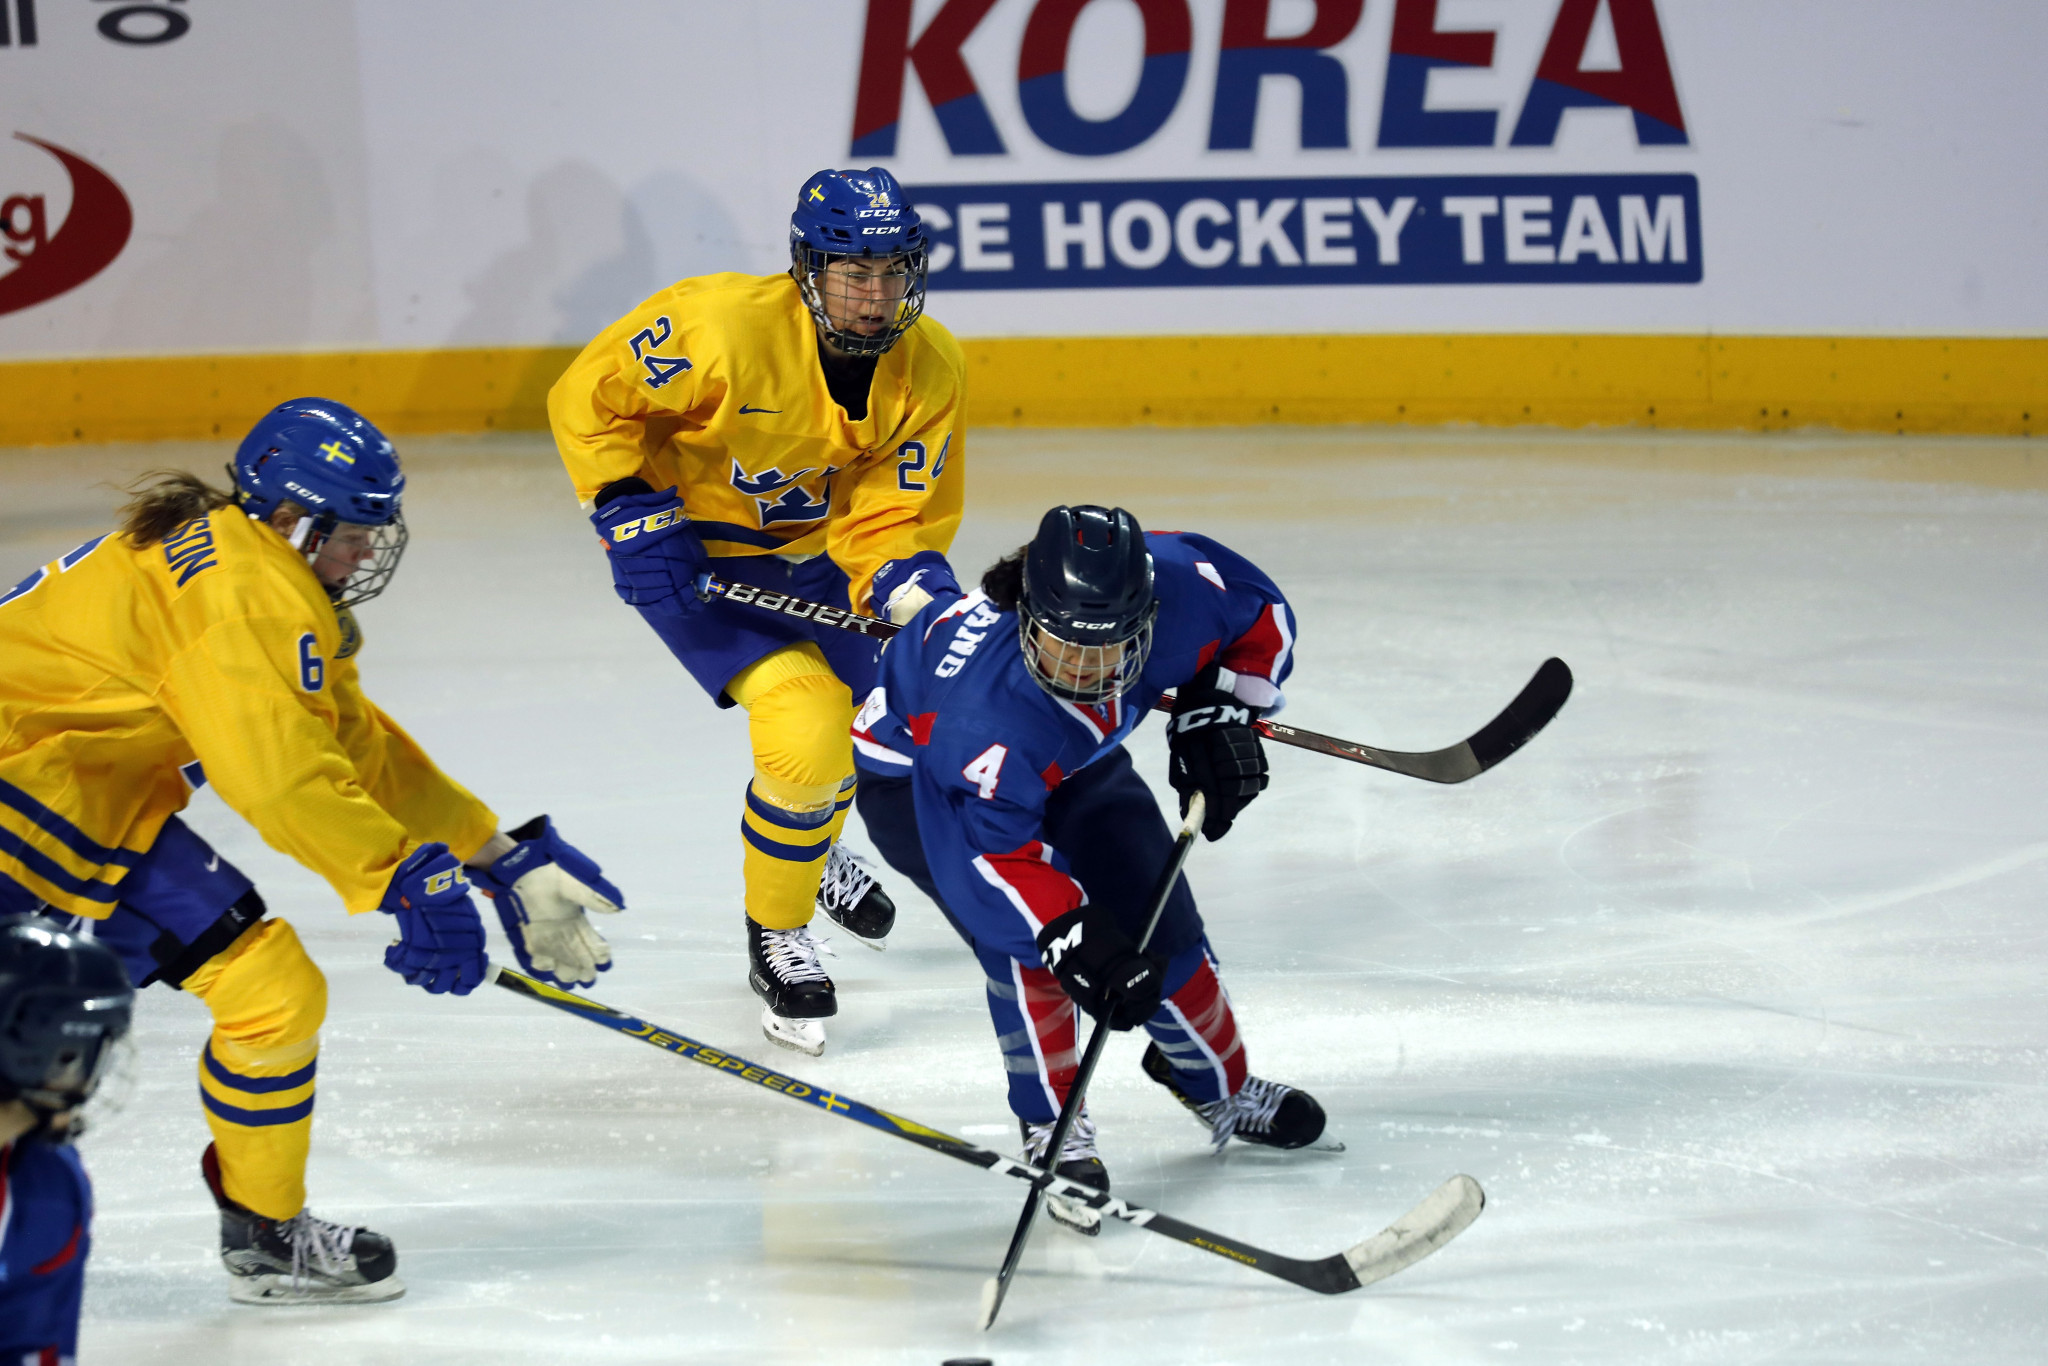 North Korean ice hockey player cleared of doping offence at Pyeongchang 2018